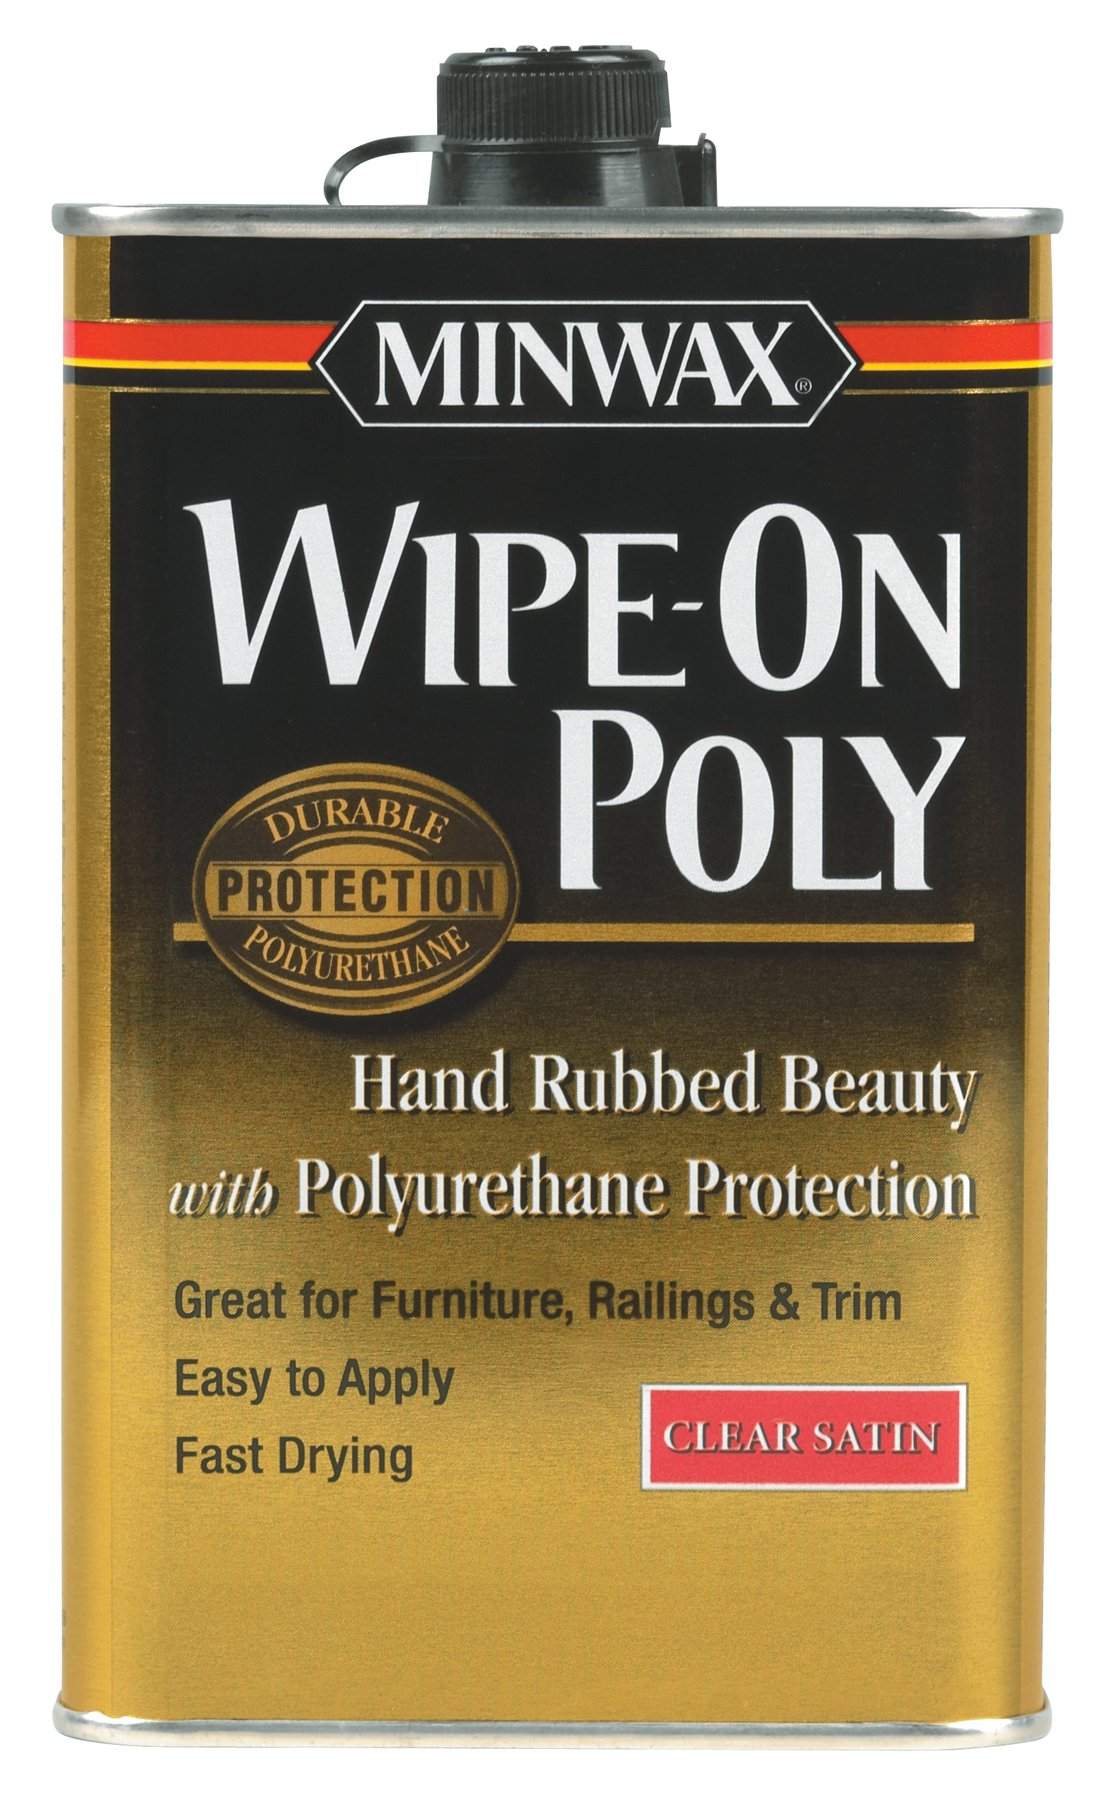 Minwax 40910000 Wipe-On Poly Finish Clear, pint, Satin